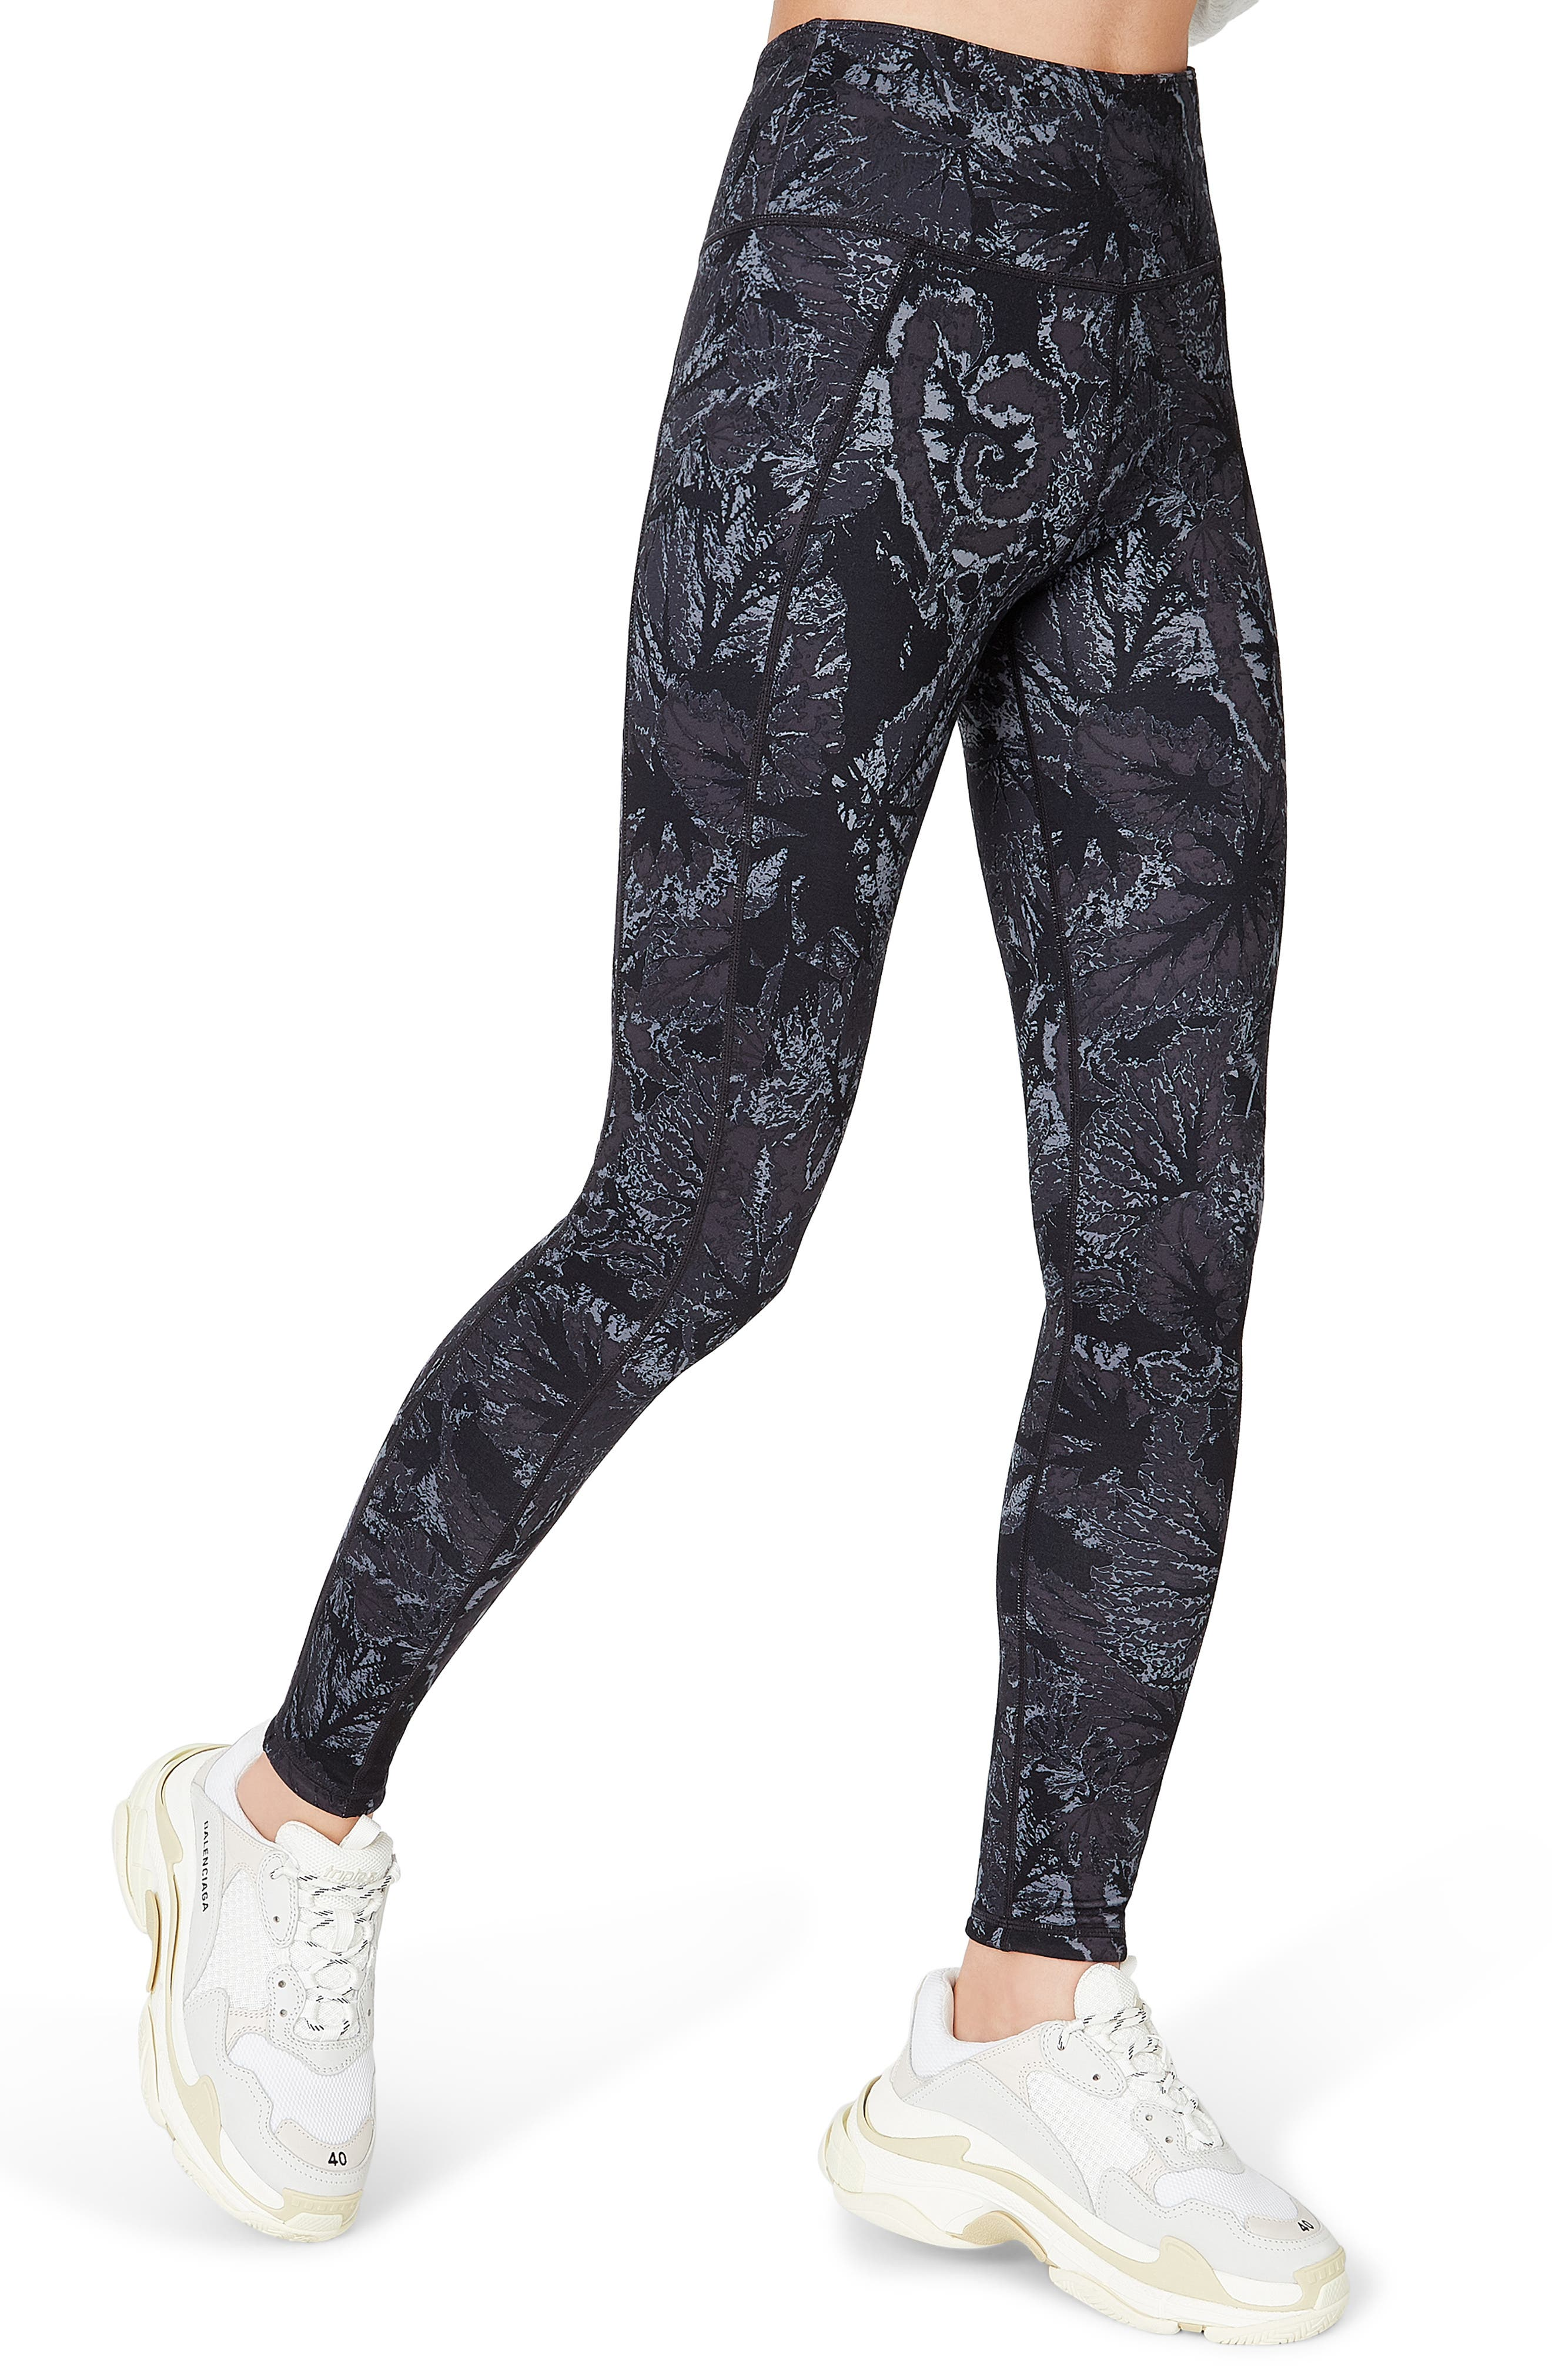 SWEATY BETTY, Reversible Yoga Leggings, Alternate thumbnail 5, color, TONAL BEGONIA PRINT